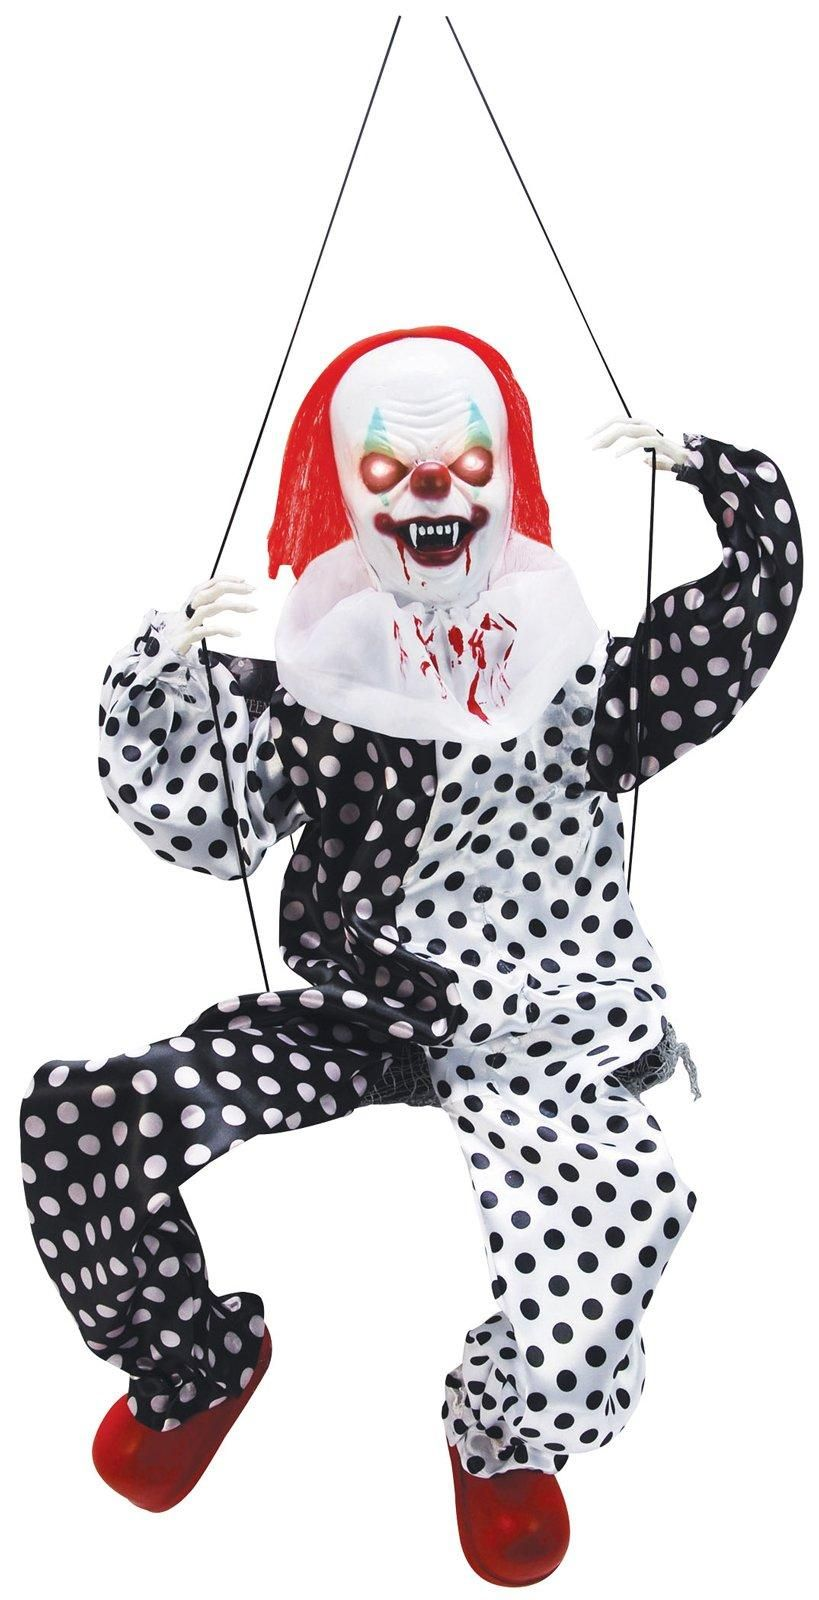 Animated Scary Clown on Swing from